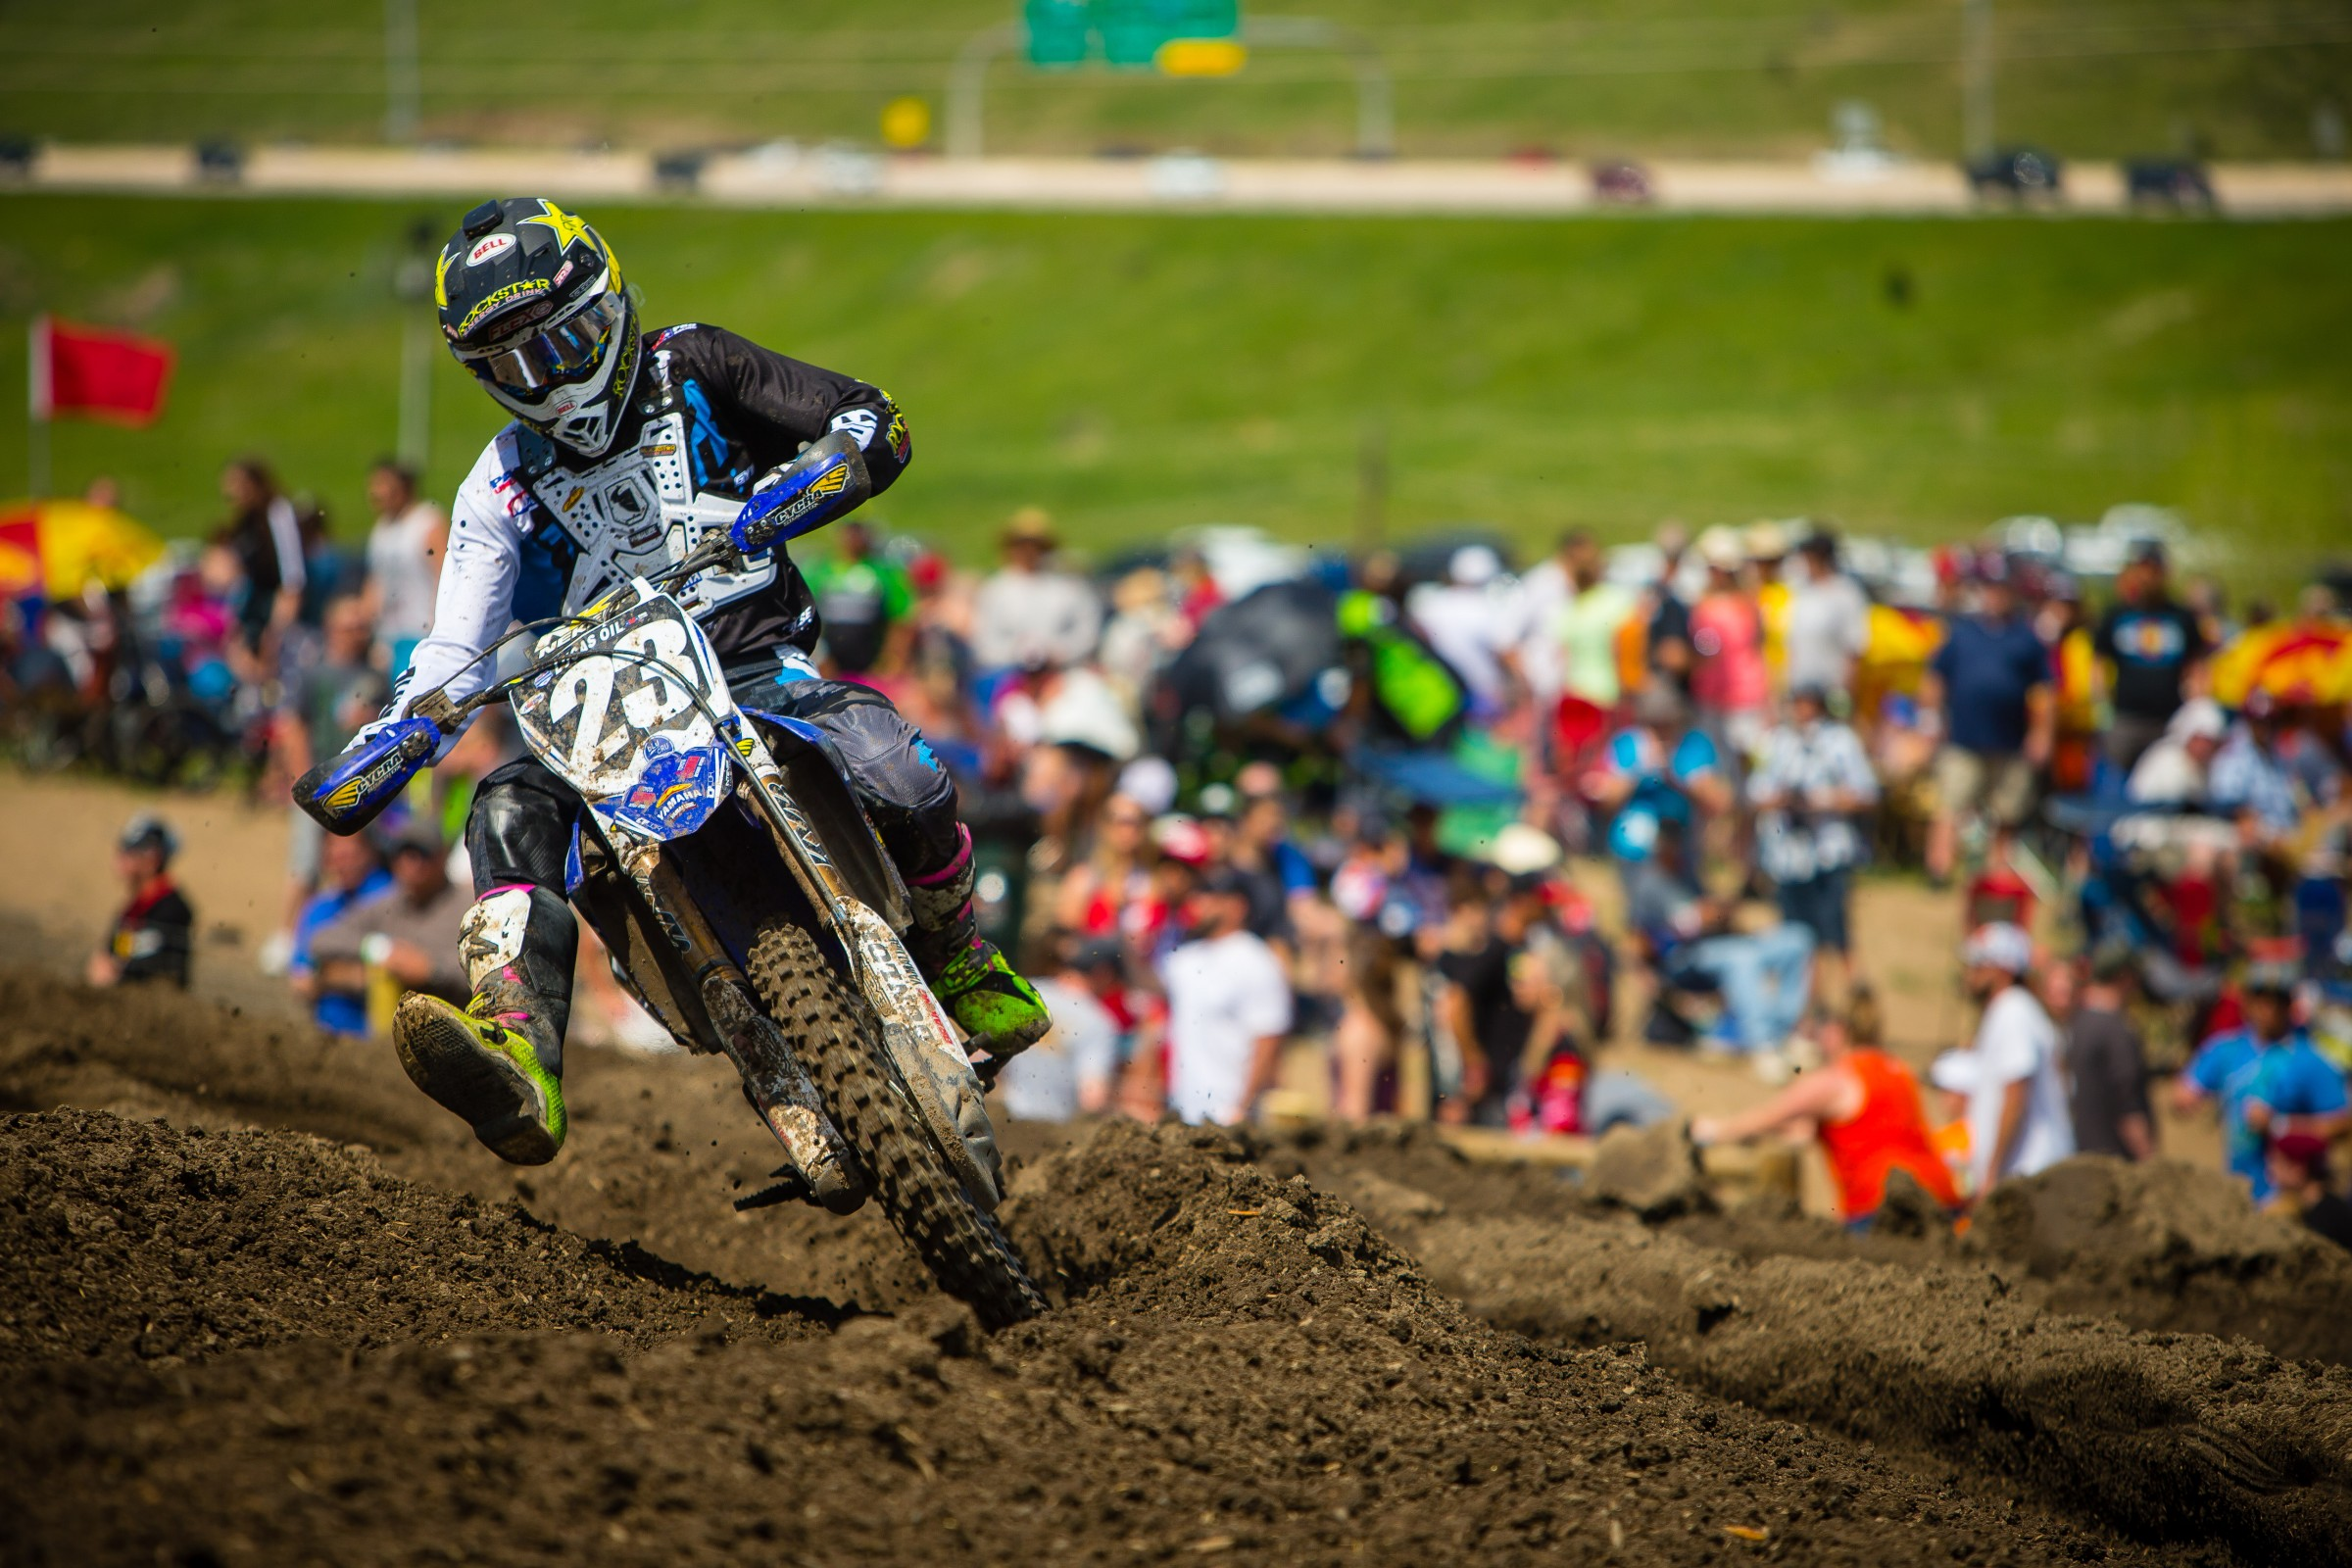 Plessinger's second moto came unravelled when he crashed and wasn't able to cross the track to get back to his bike.